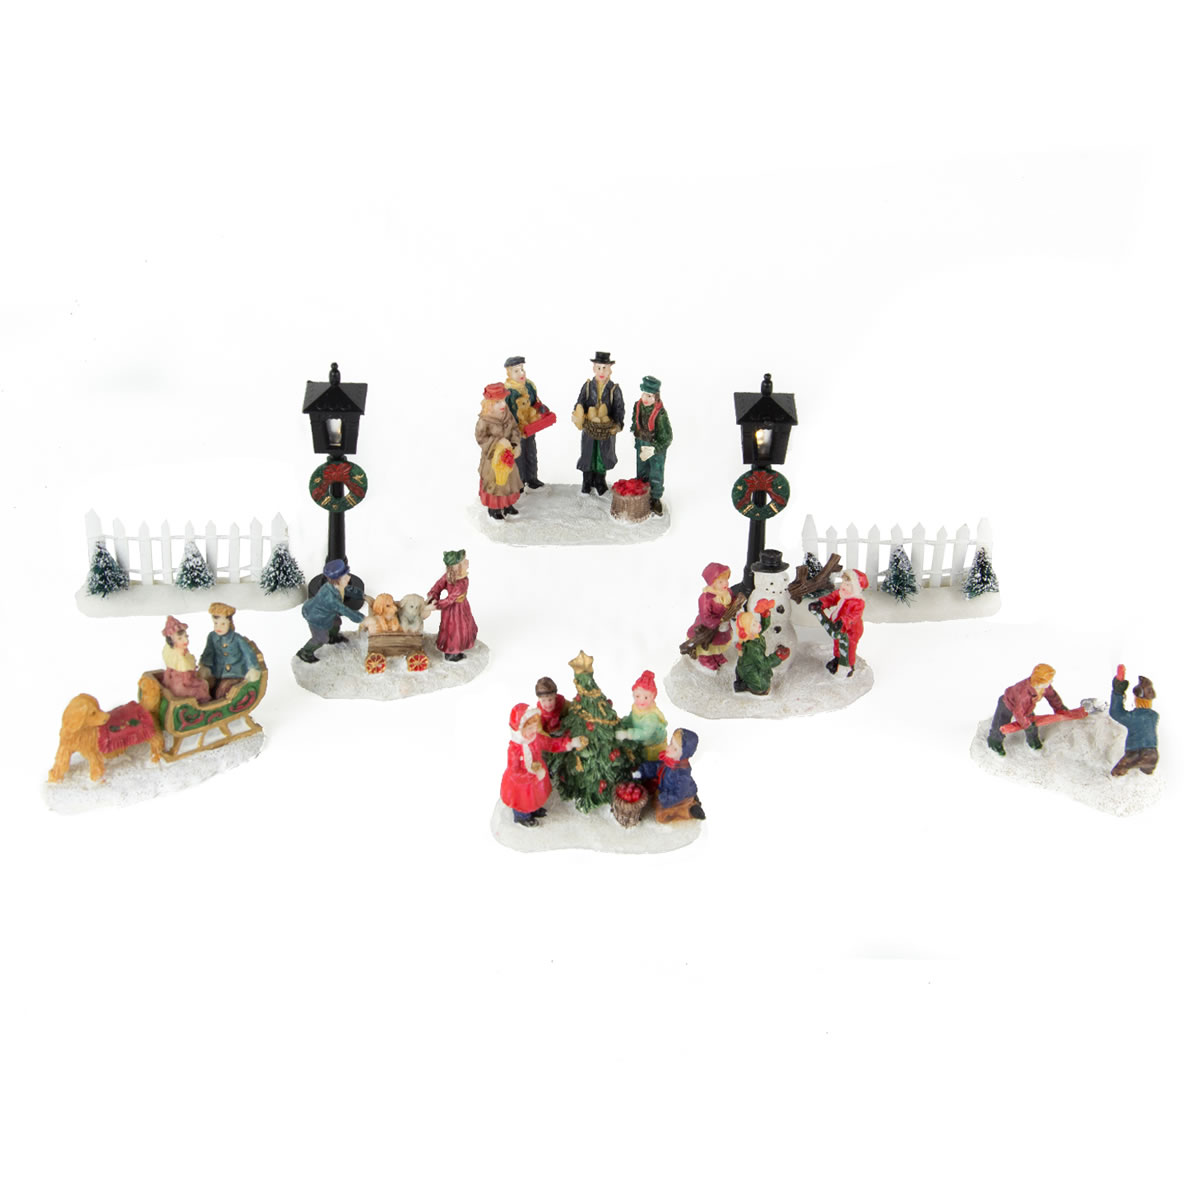 Village Figurines and Lamps s/10